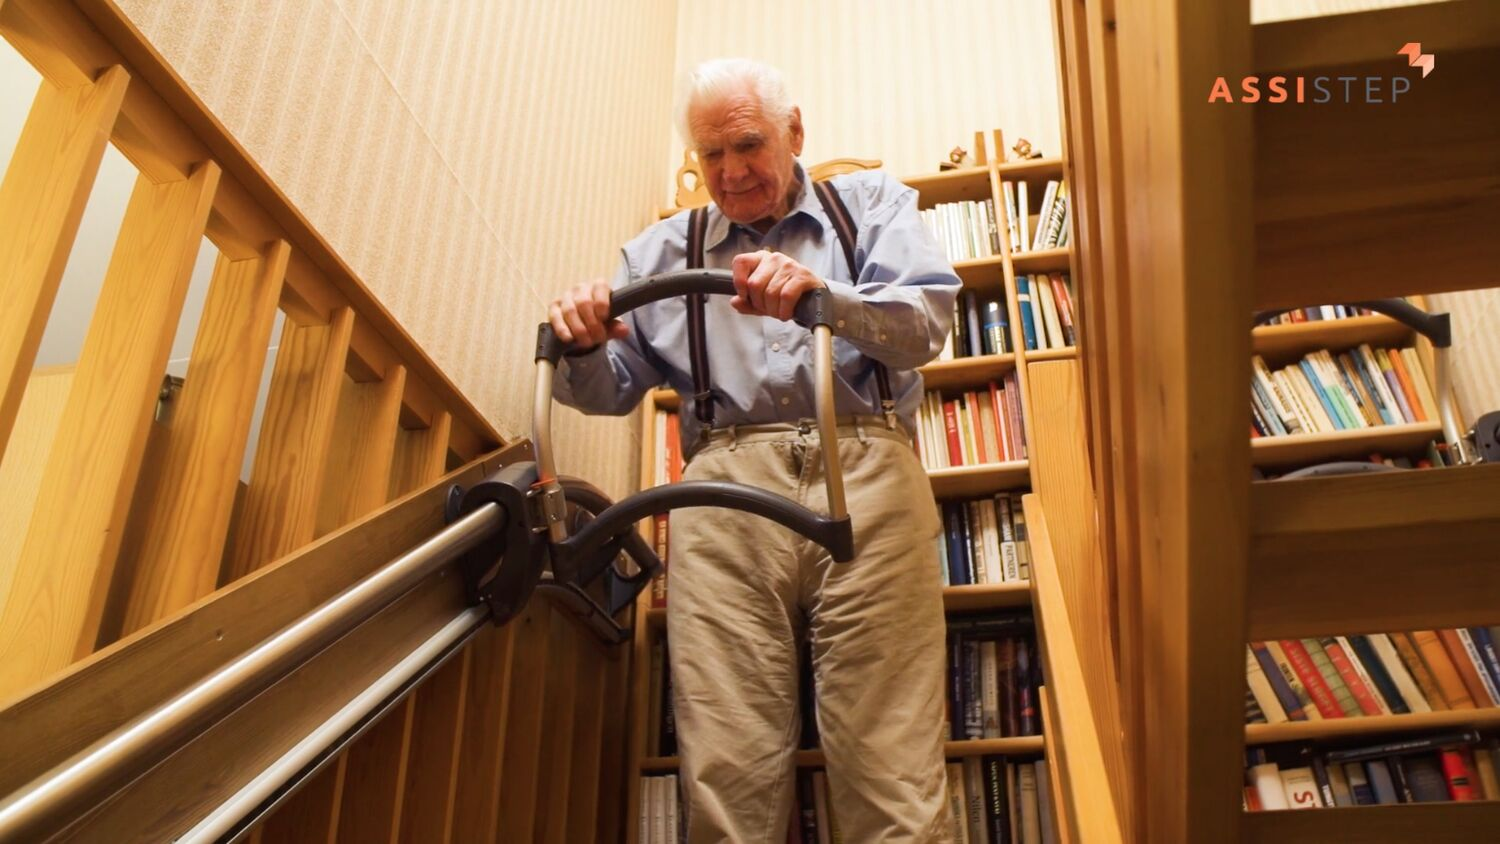 Stair Aid For The Elderly